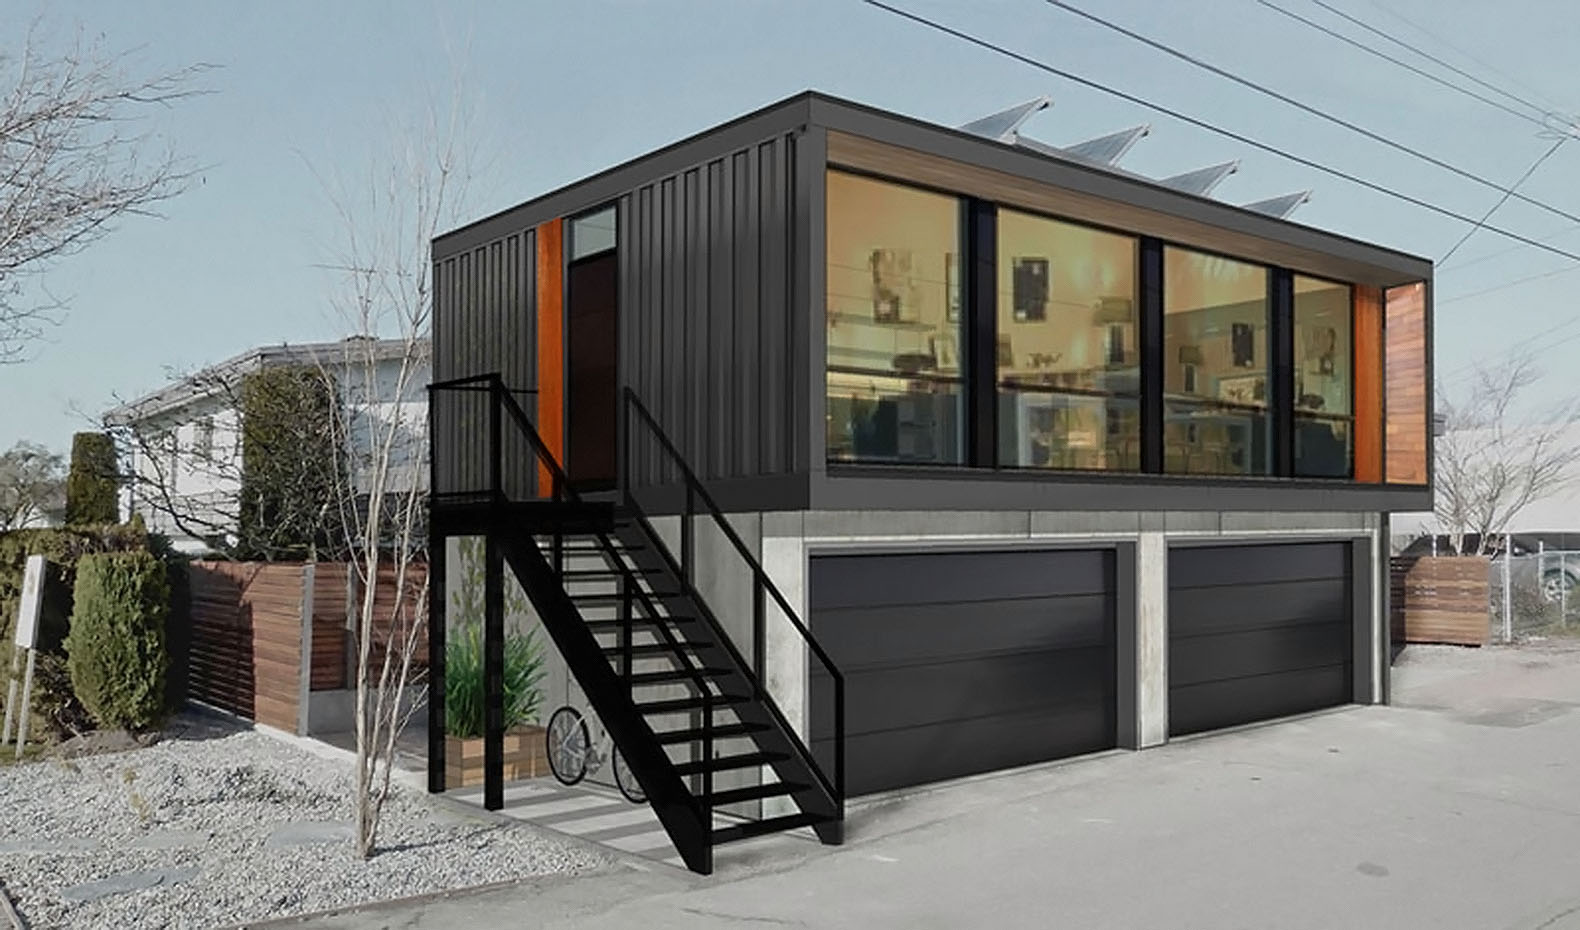 Best Kitchen Gallery: You Can Order Honomobo's Prefab Shipping Container Homes Online of Homes From Storage Containers  on rachelxblog.com